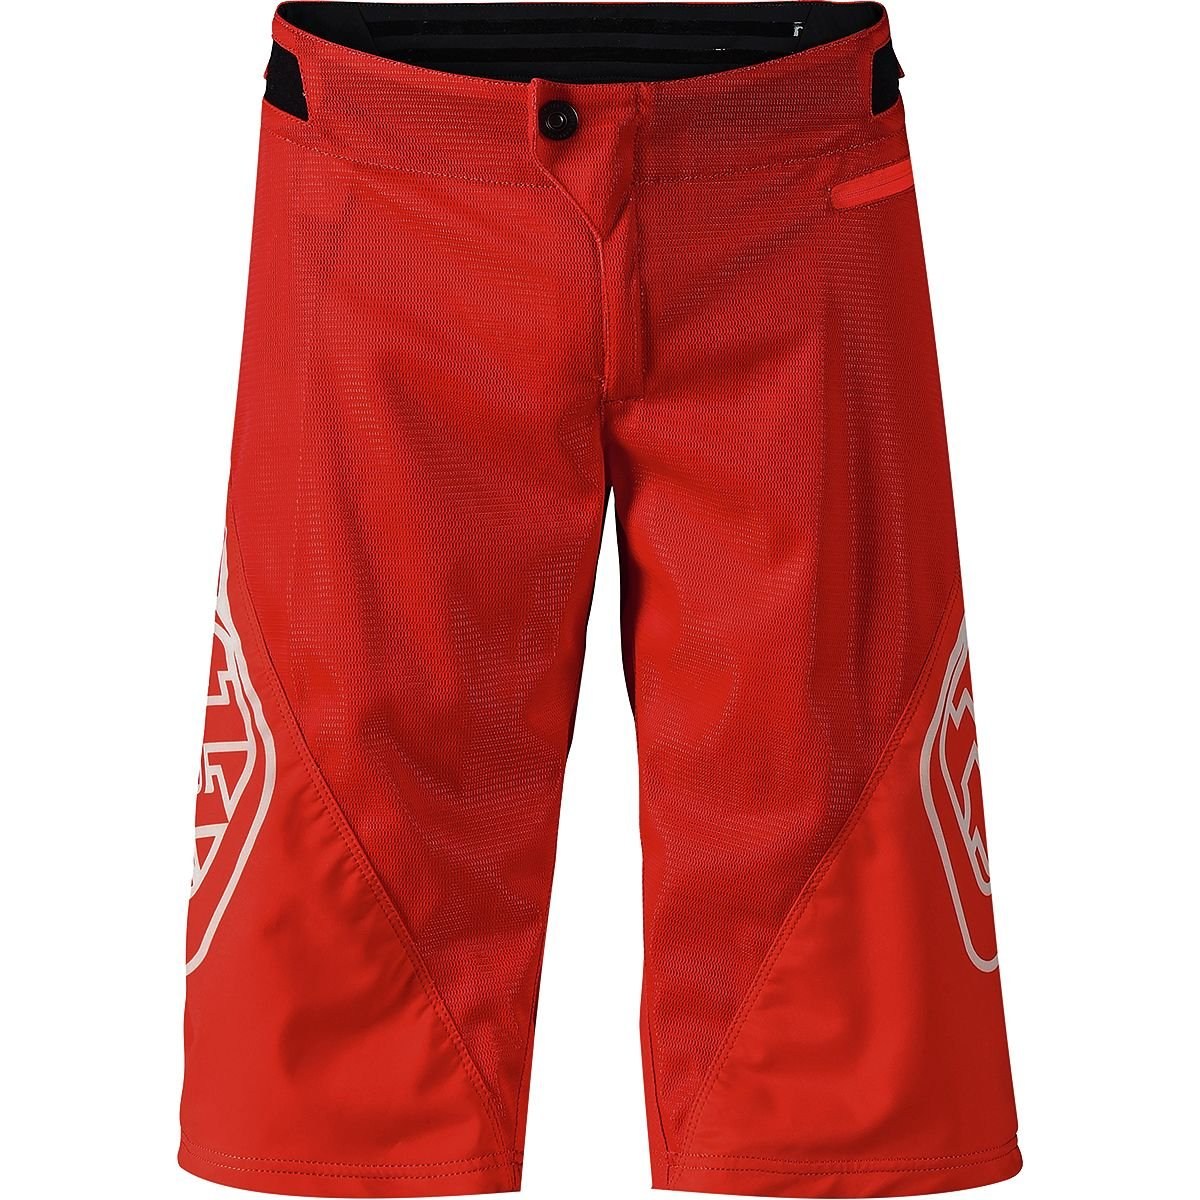 Troy Lee Designs Sprint Shorts - Boys' Red, 18